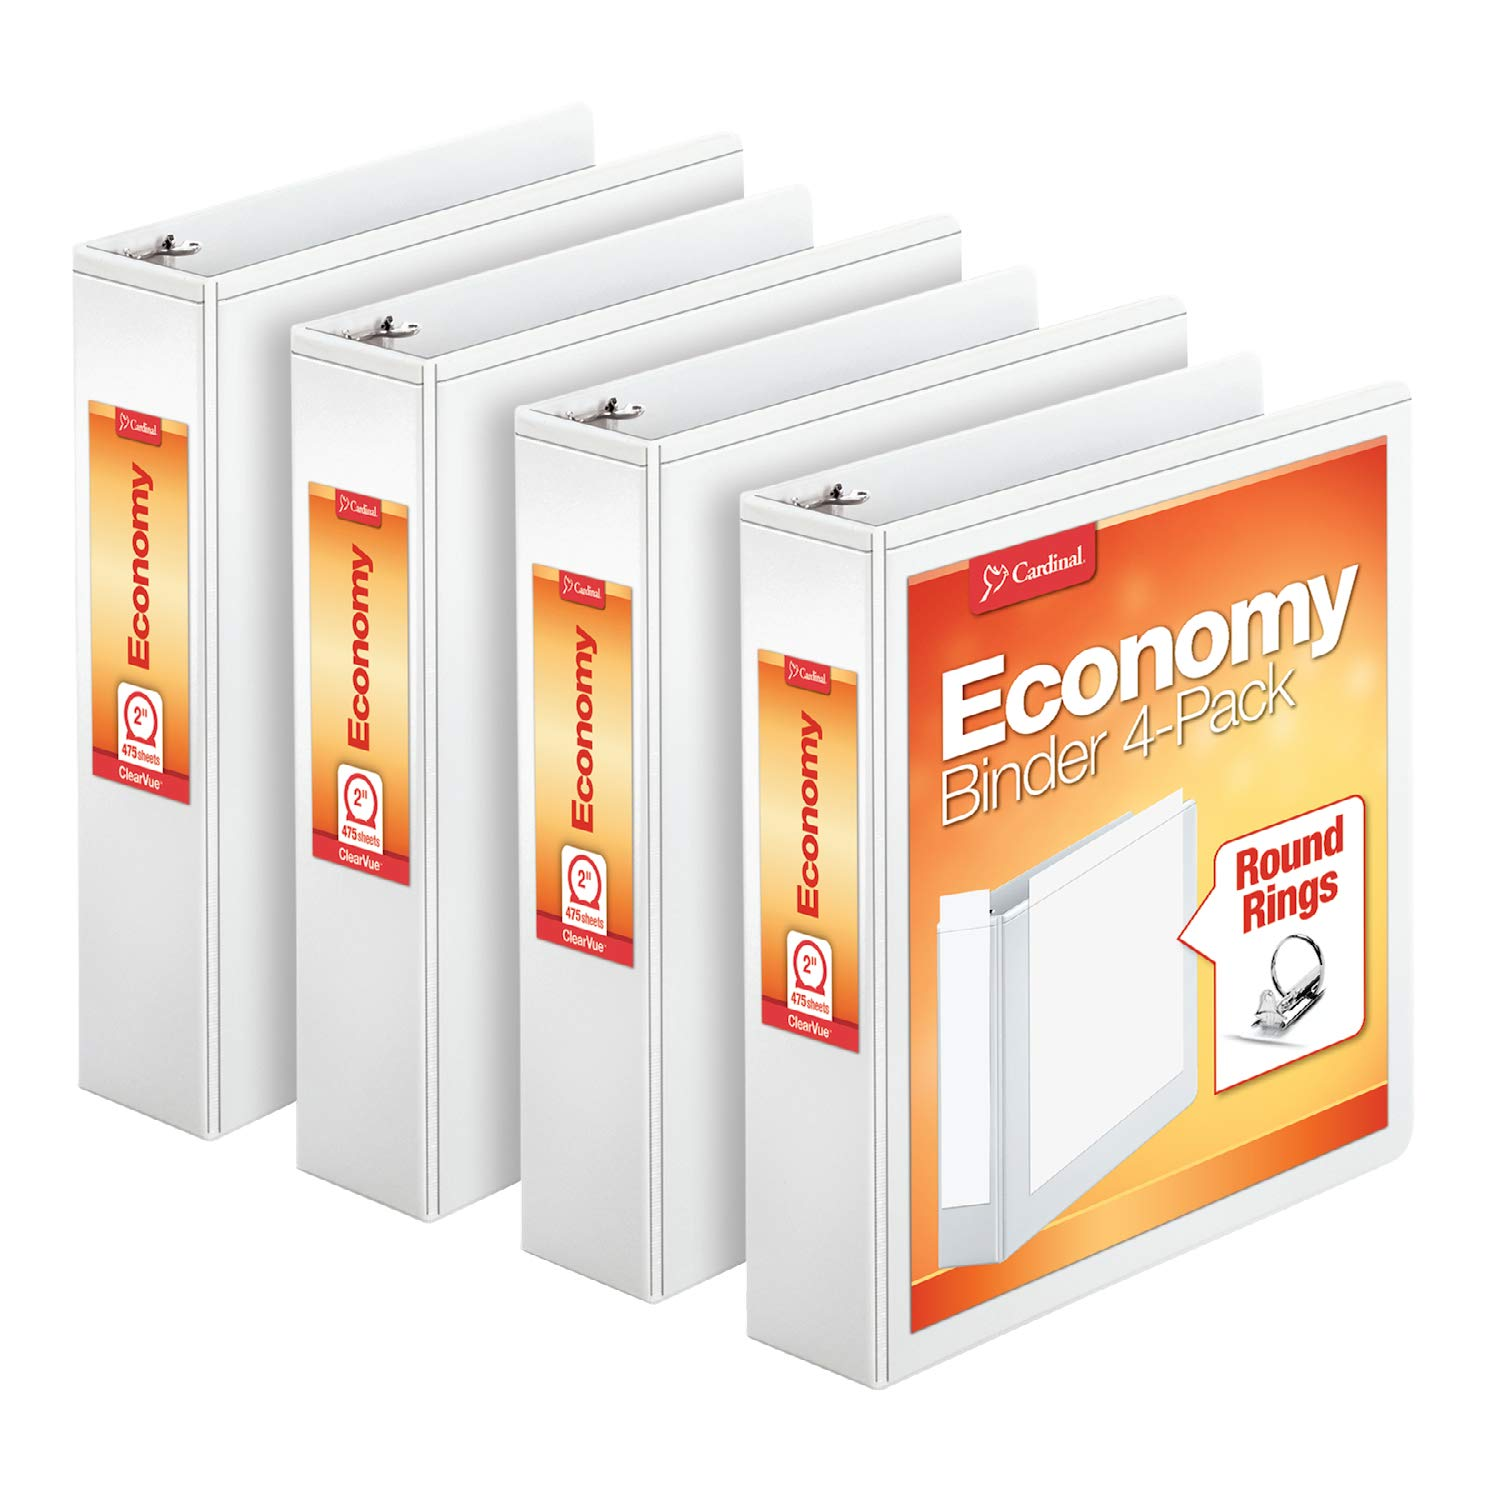 Cardinal Economy 2'' Round-Ring Presentation View Binders, 3-Ring Binder, Holds 475 Sheets, Nonstick Poly Material, PVC-Free, White, 4-Pack (79520) by Cardinal